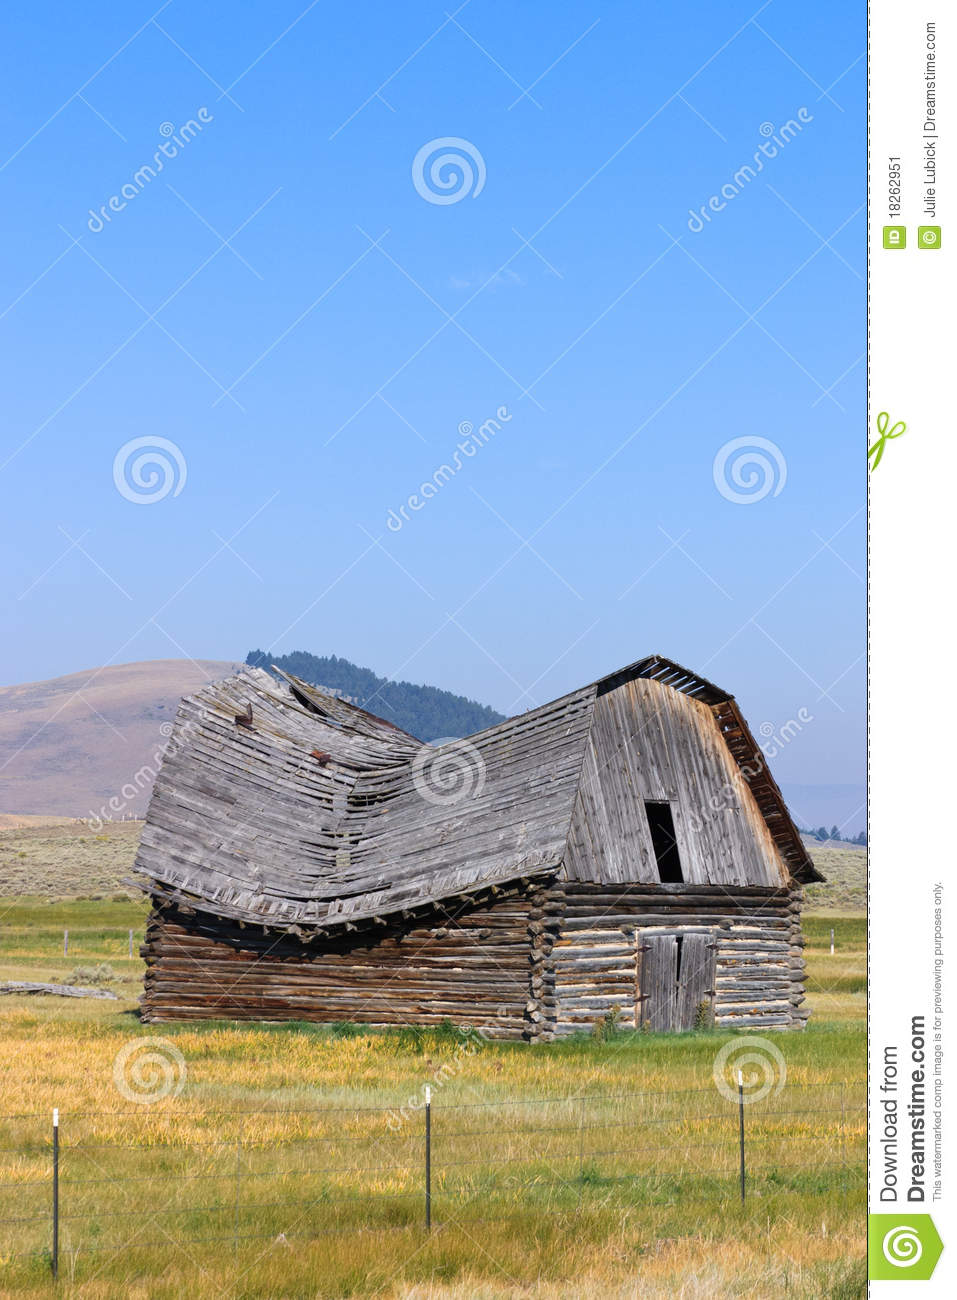 Old Barn With Sagging Roof Stock Image Image Of Blue